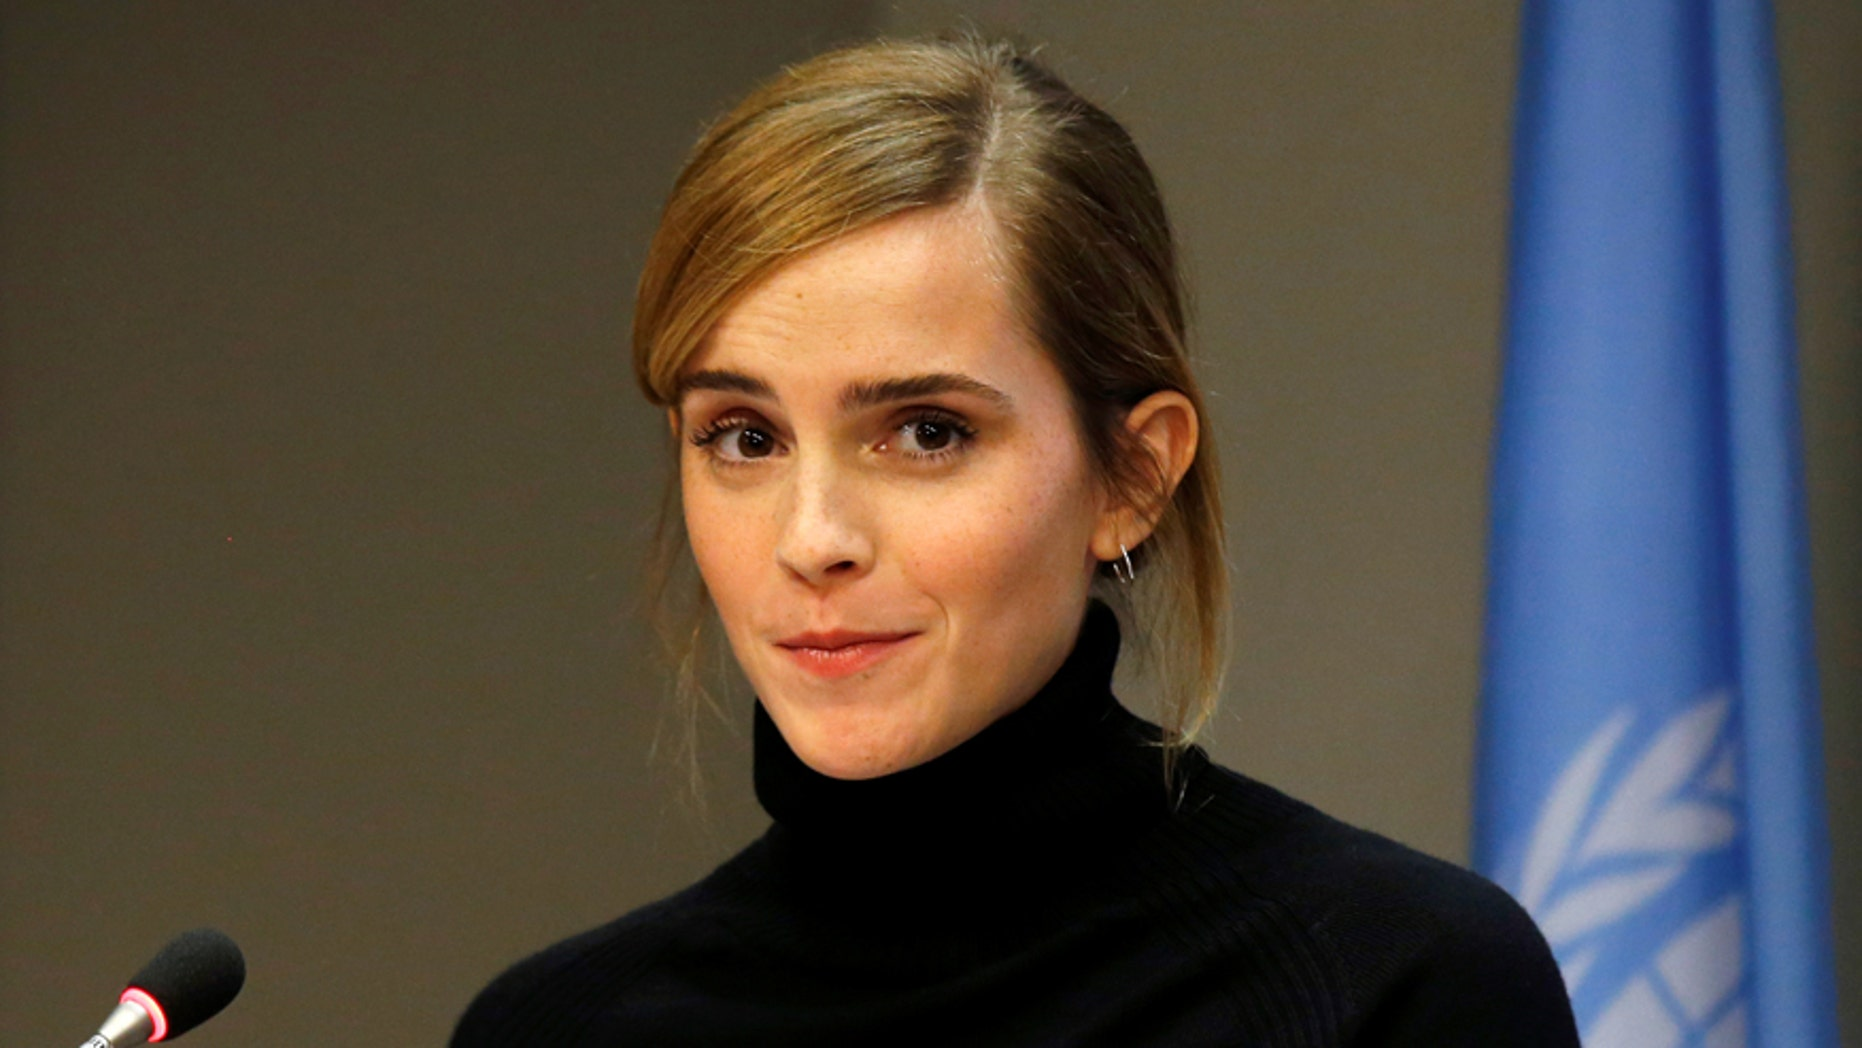 File photo: UN Women's Goodwill Ambassador, Emma Watson, speaks during a news conference to launch the HeForShe IMPACT on the sidelines of the United Nations General Assembly at United Nations headquarters in New York City, U.S. September 20, 2016. (REUTERS/Brendan McDermid)